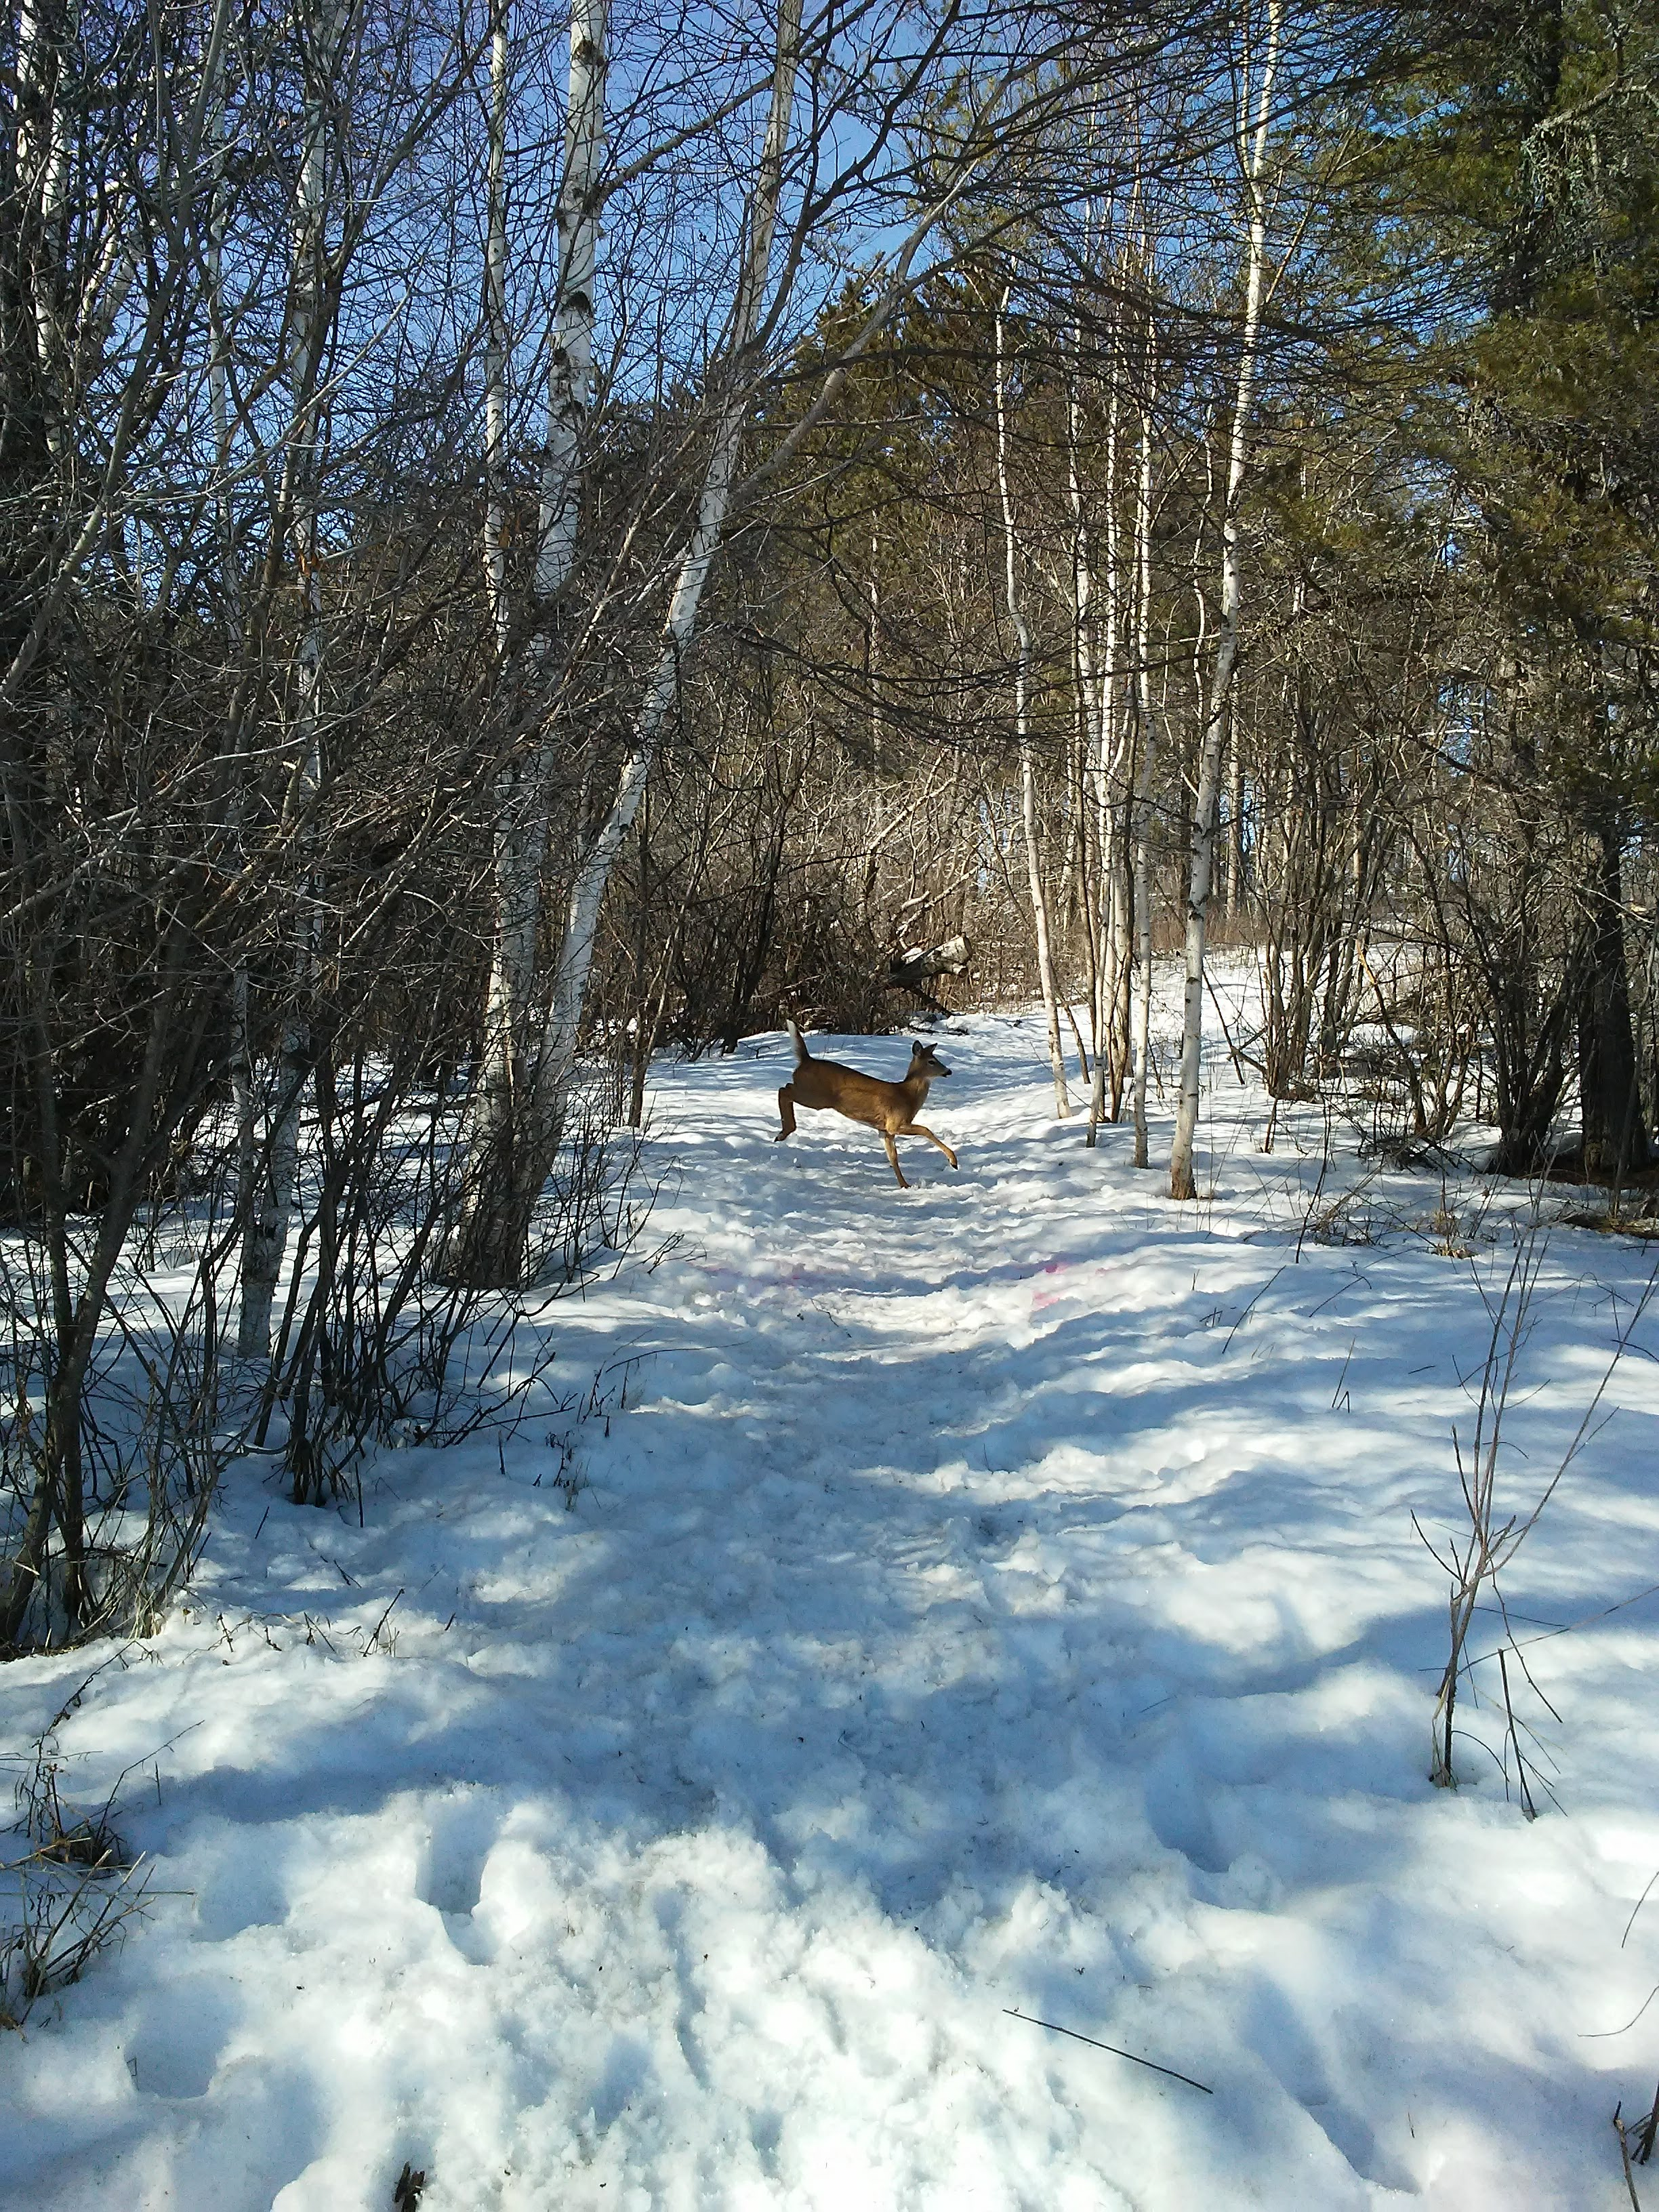 deer running across a snowy path in the woods